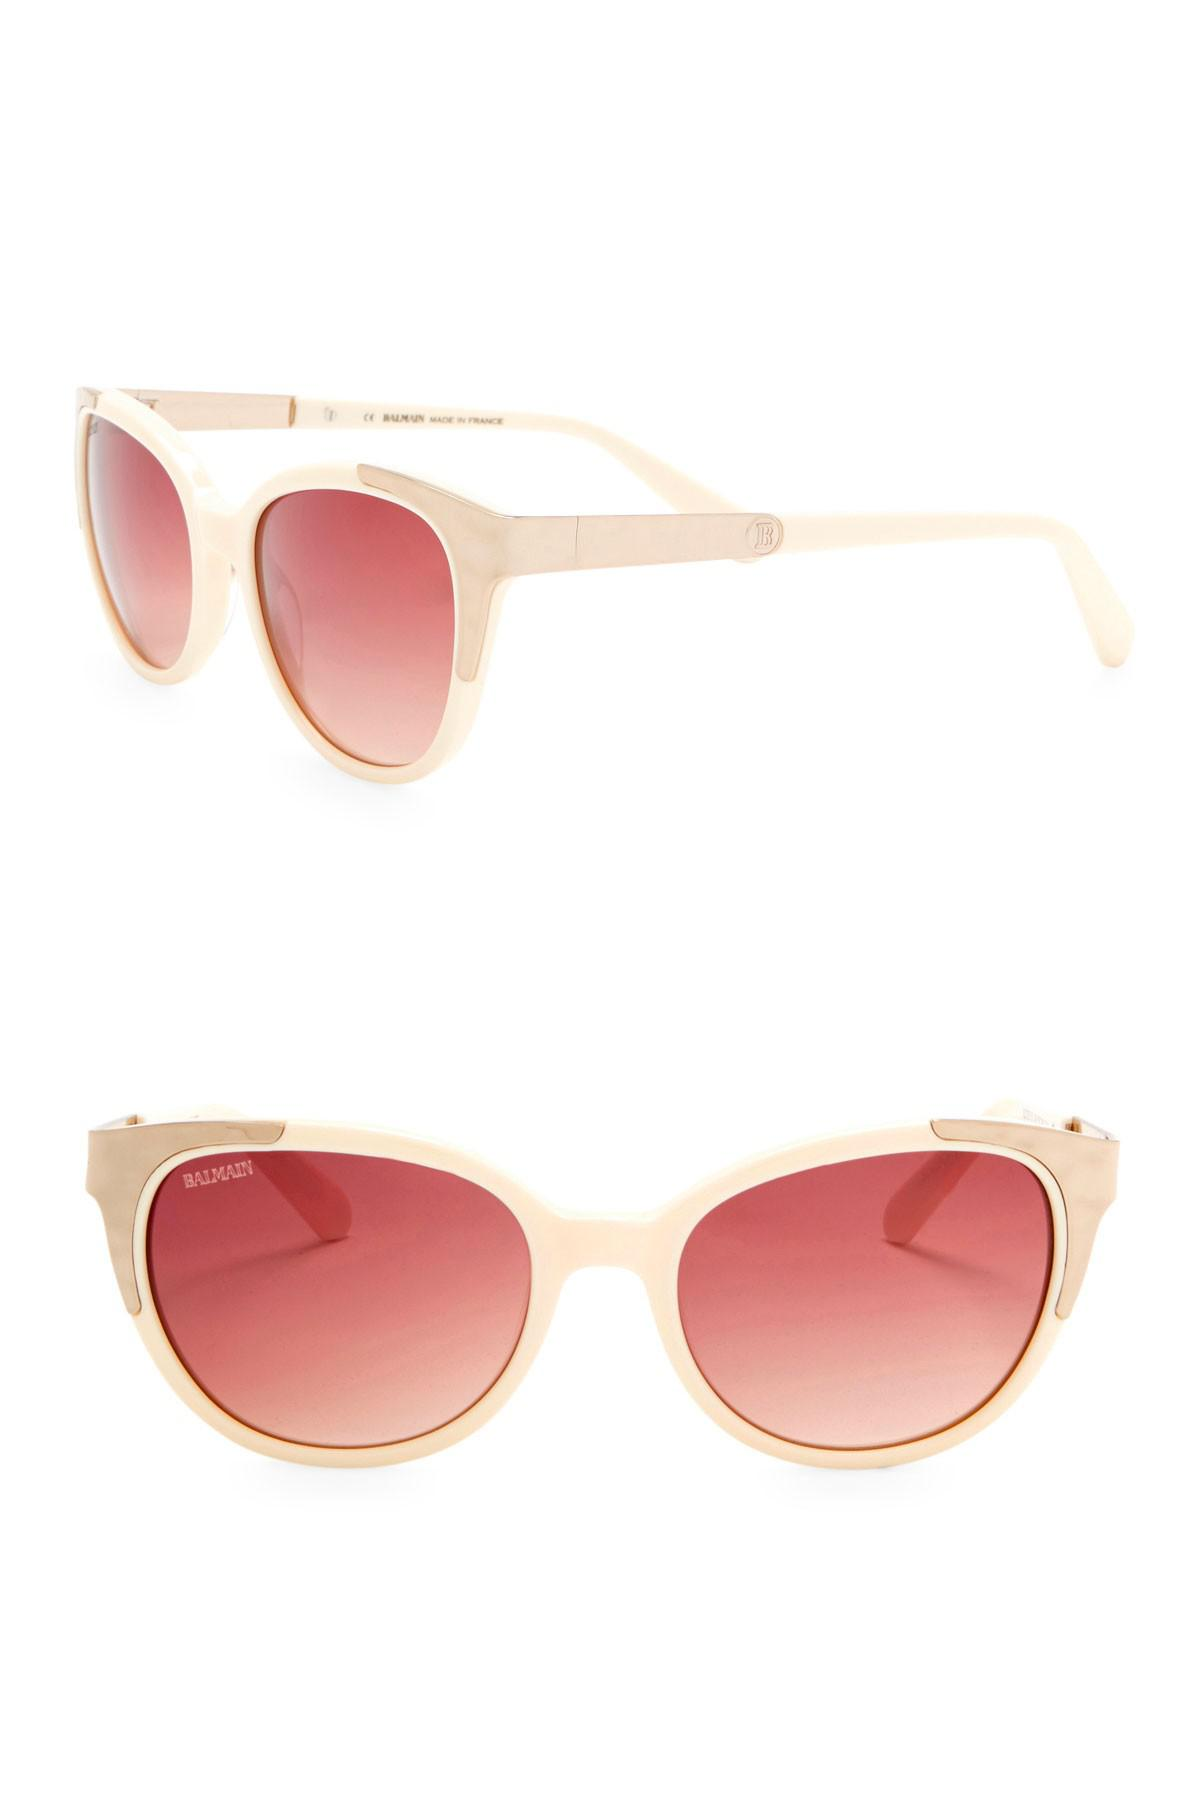 01eb903e97 Lyst - Balmain 53mm Cat Eye Sunglasses in White